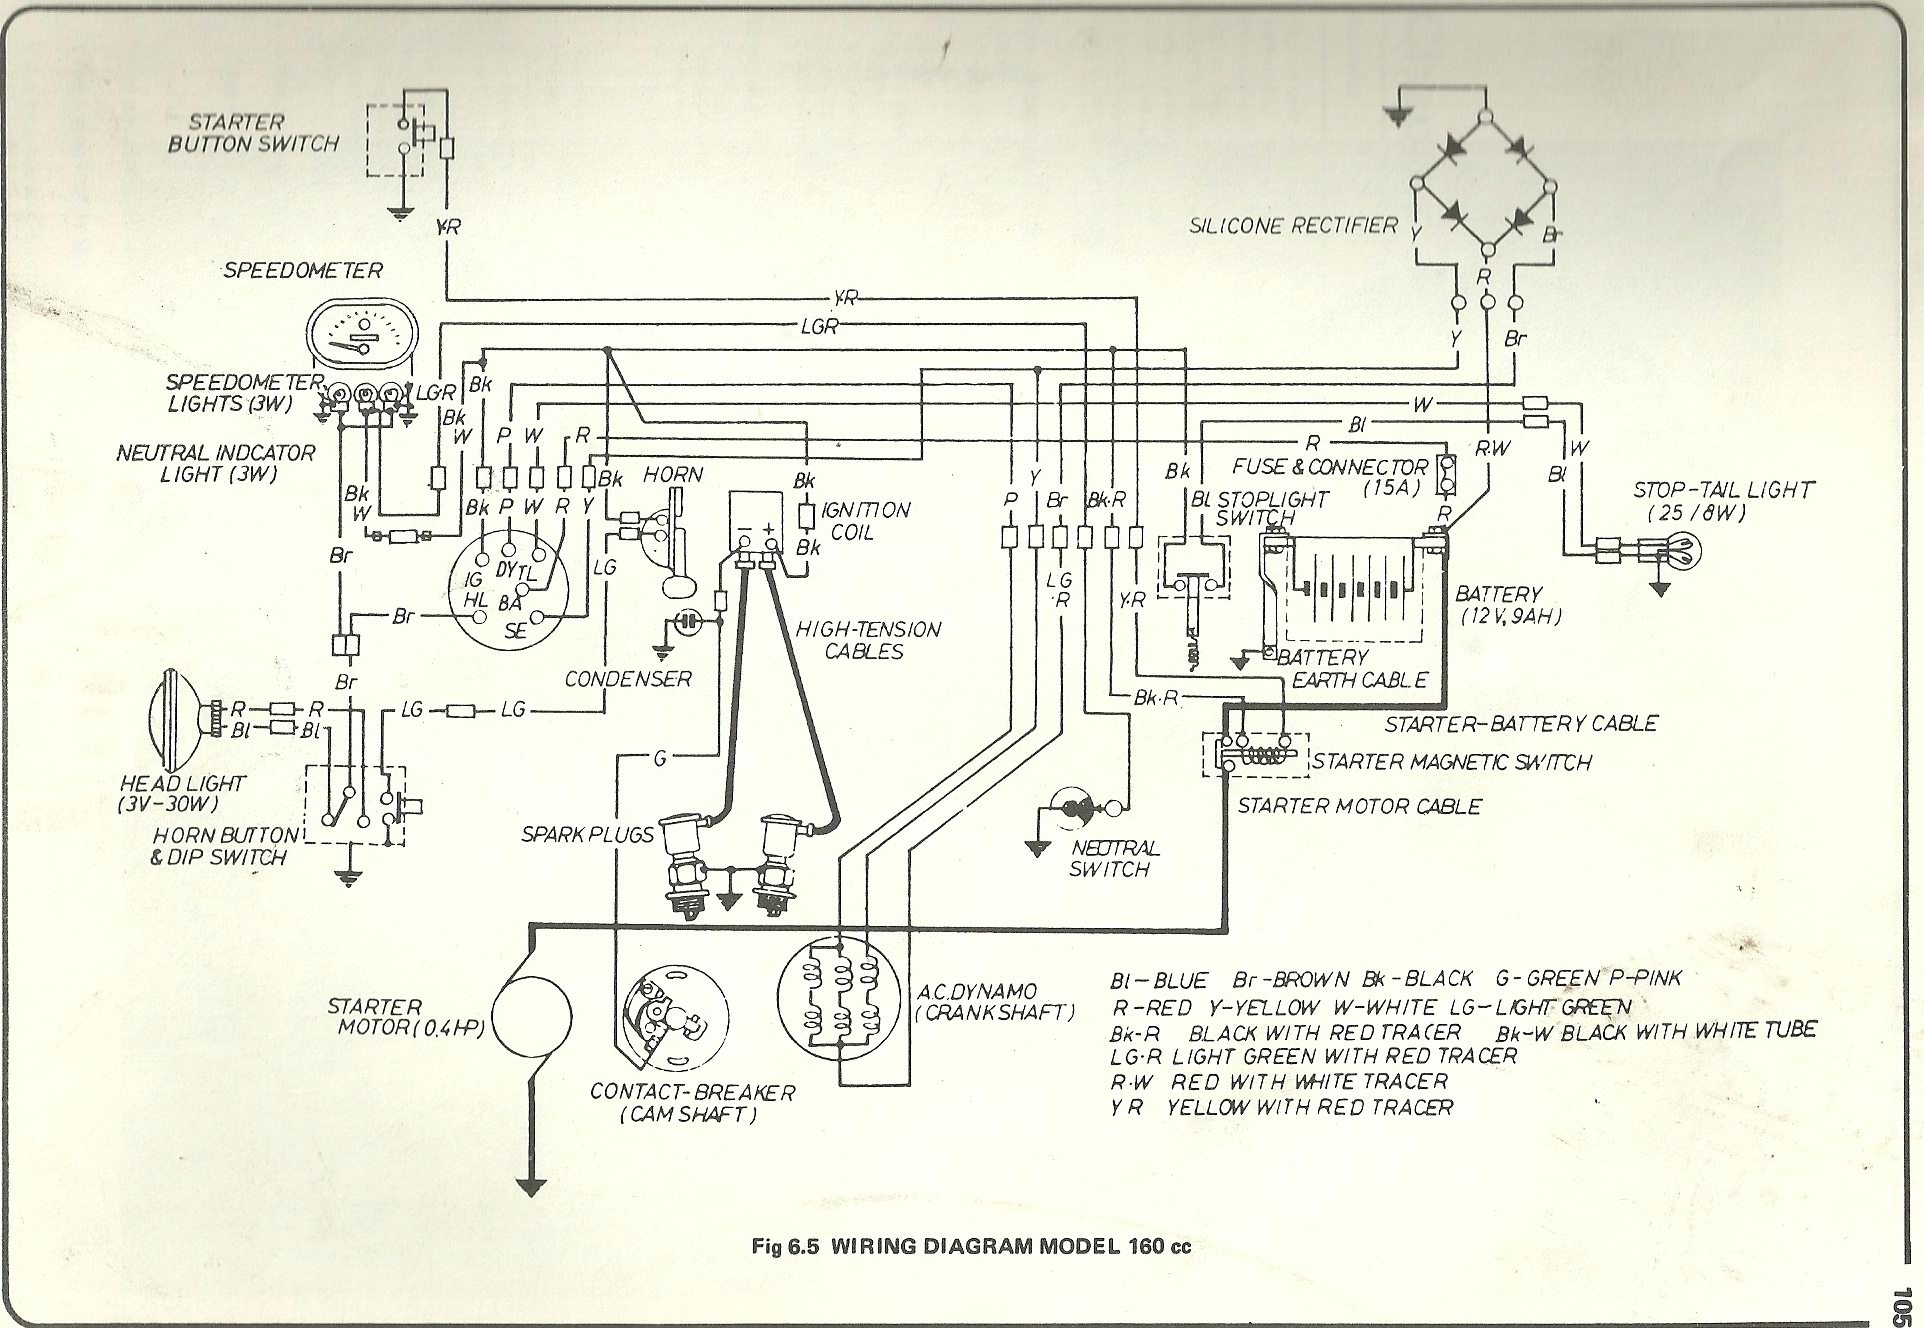 hight resolution of 1965 honda cb160 wiring diagram electrical cb175 explained diagrams rh dmdelectro co 1966 specs